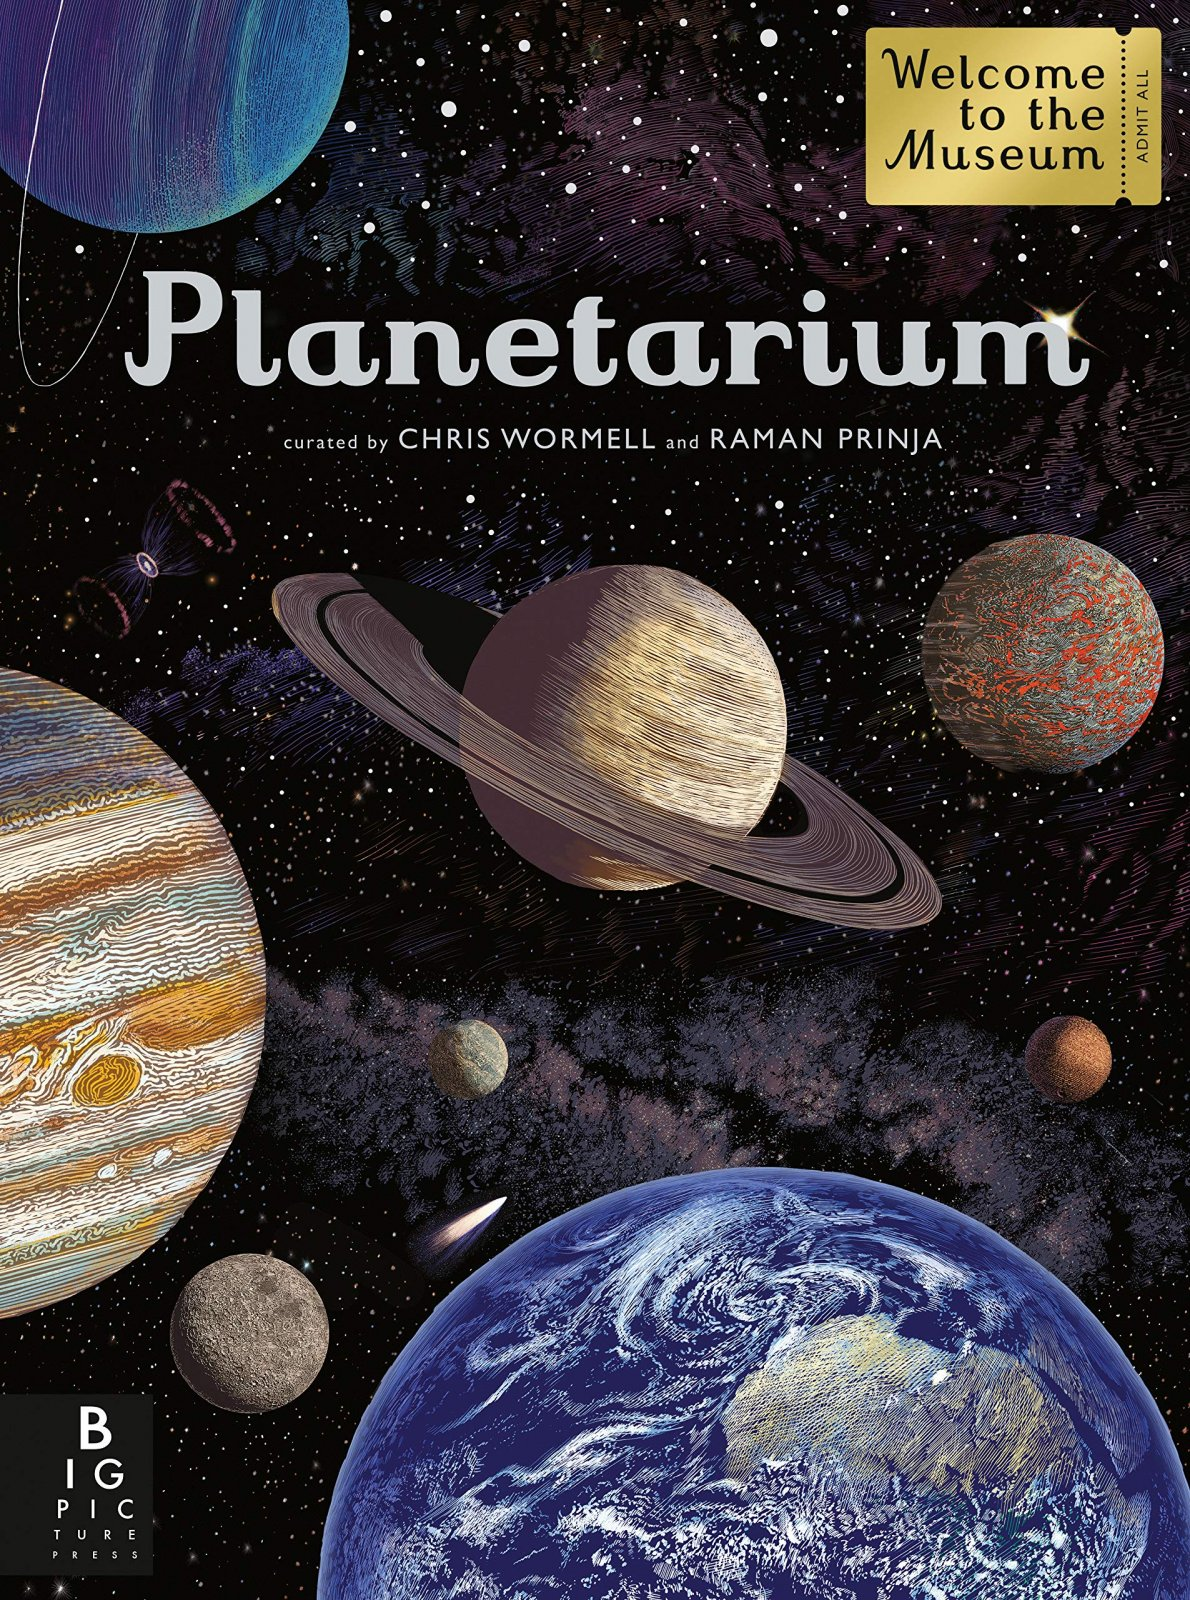 Planetarium By Chris Wormell and Raman Prinja